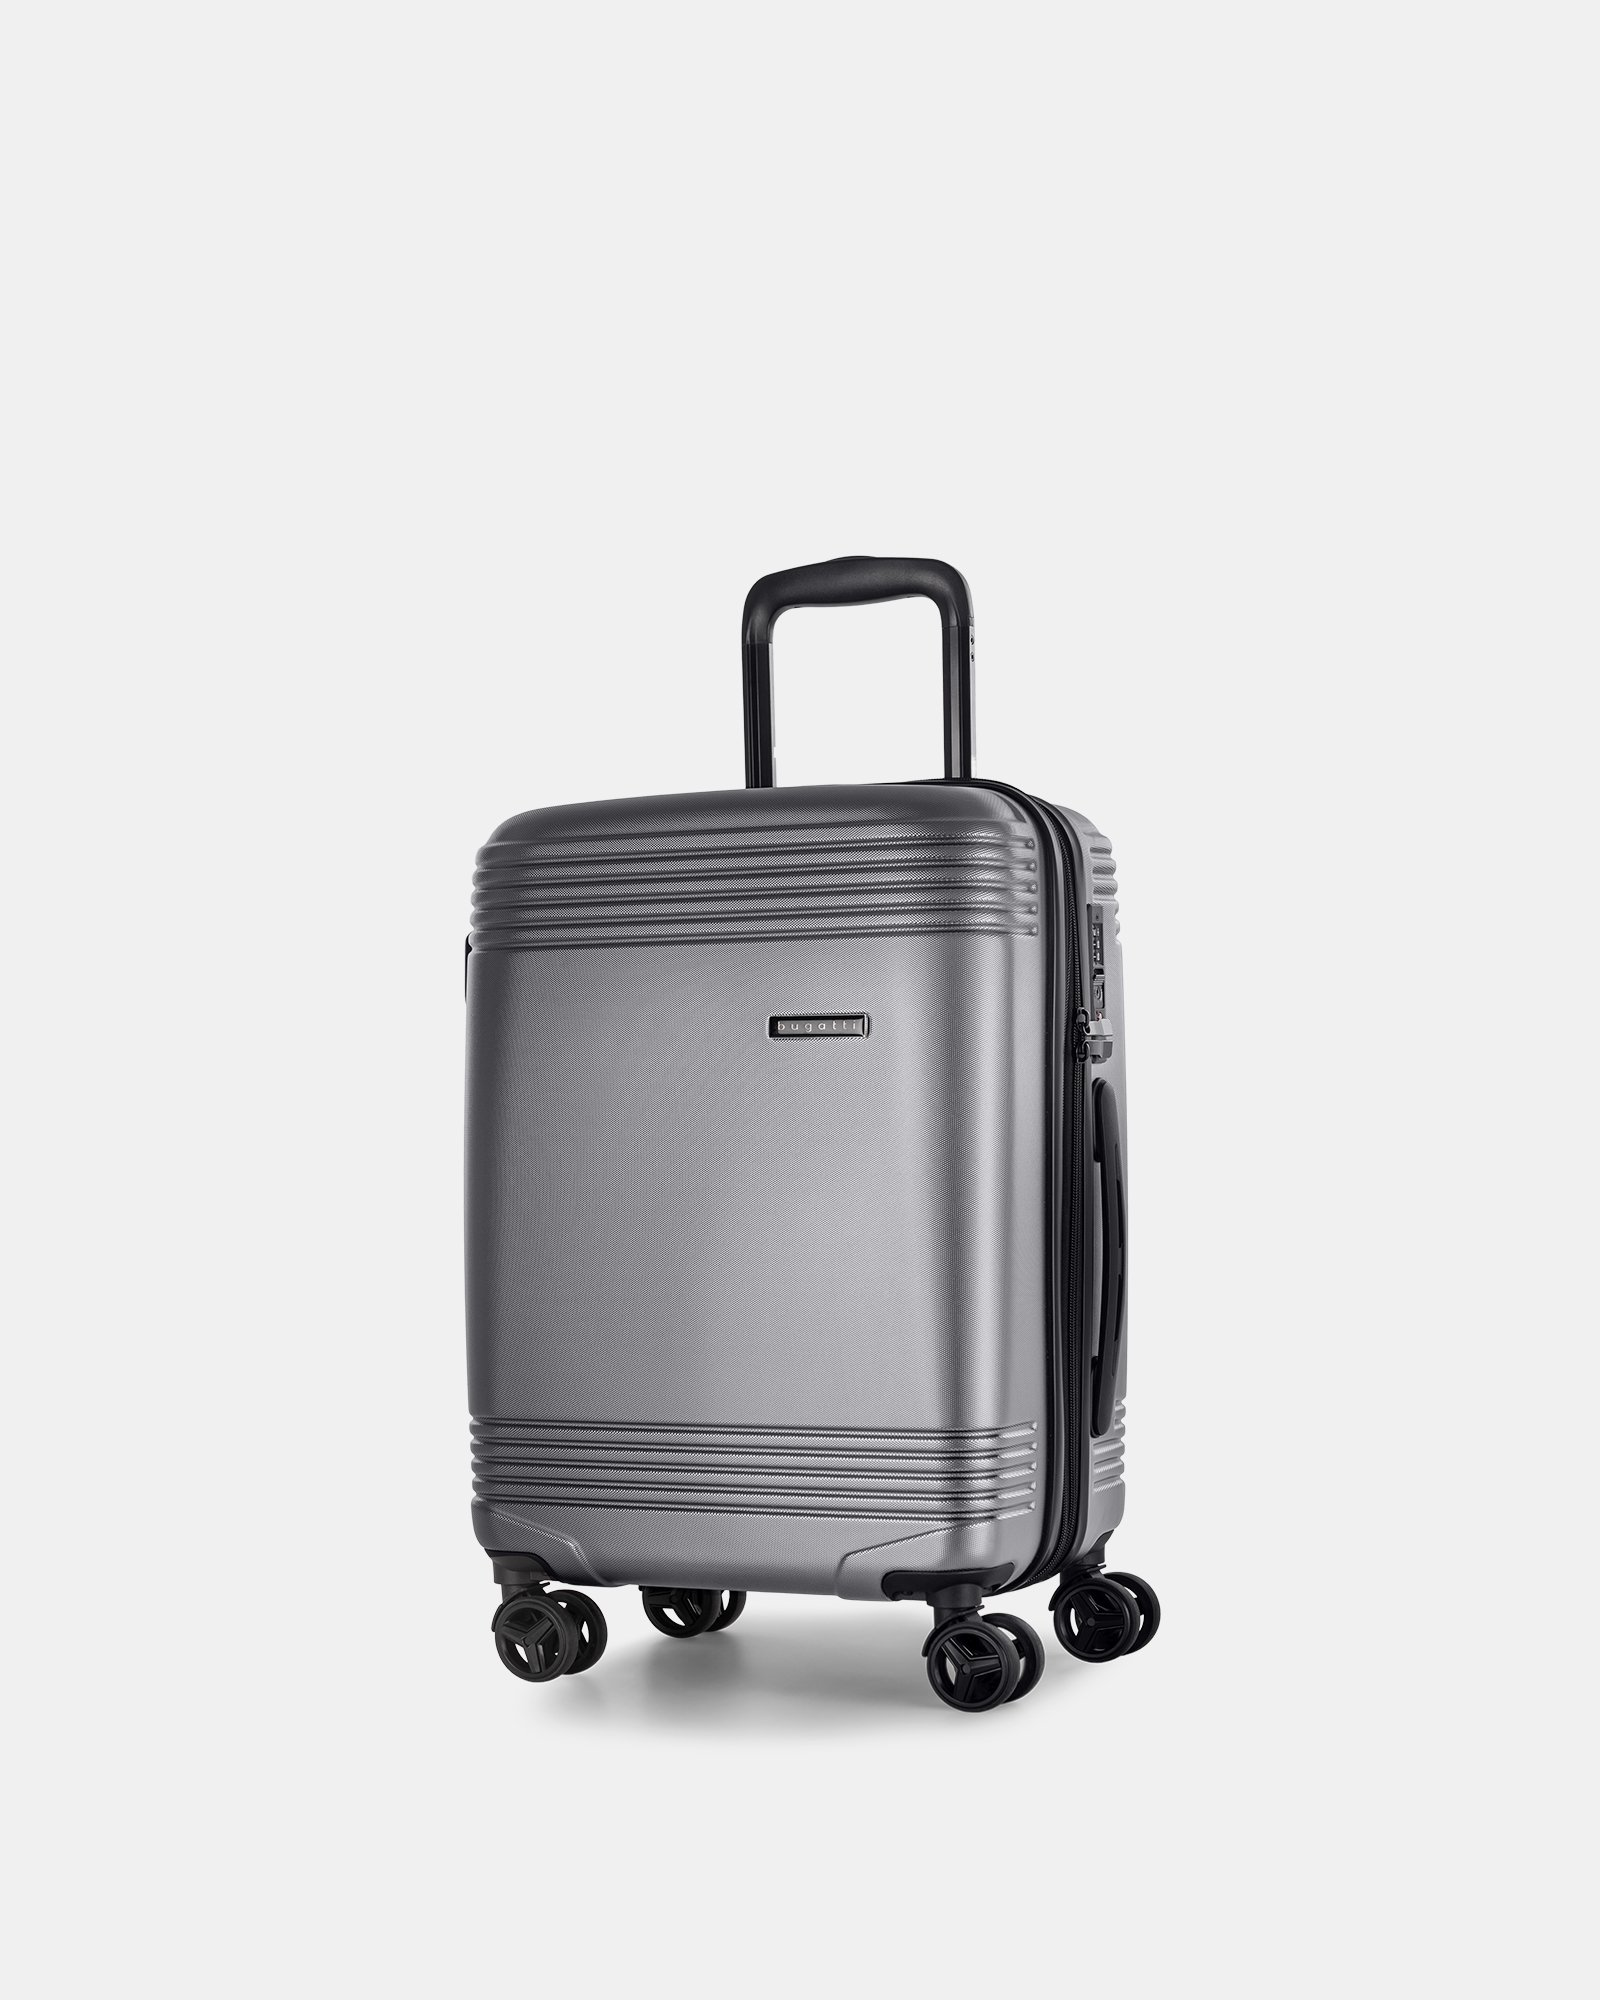 NASHVILLE - HARDSIDE CARRY-ON in 100% recycled plastic with TSA lock - Charcoal - Bugatti - Zoom